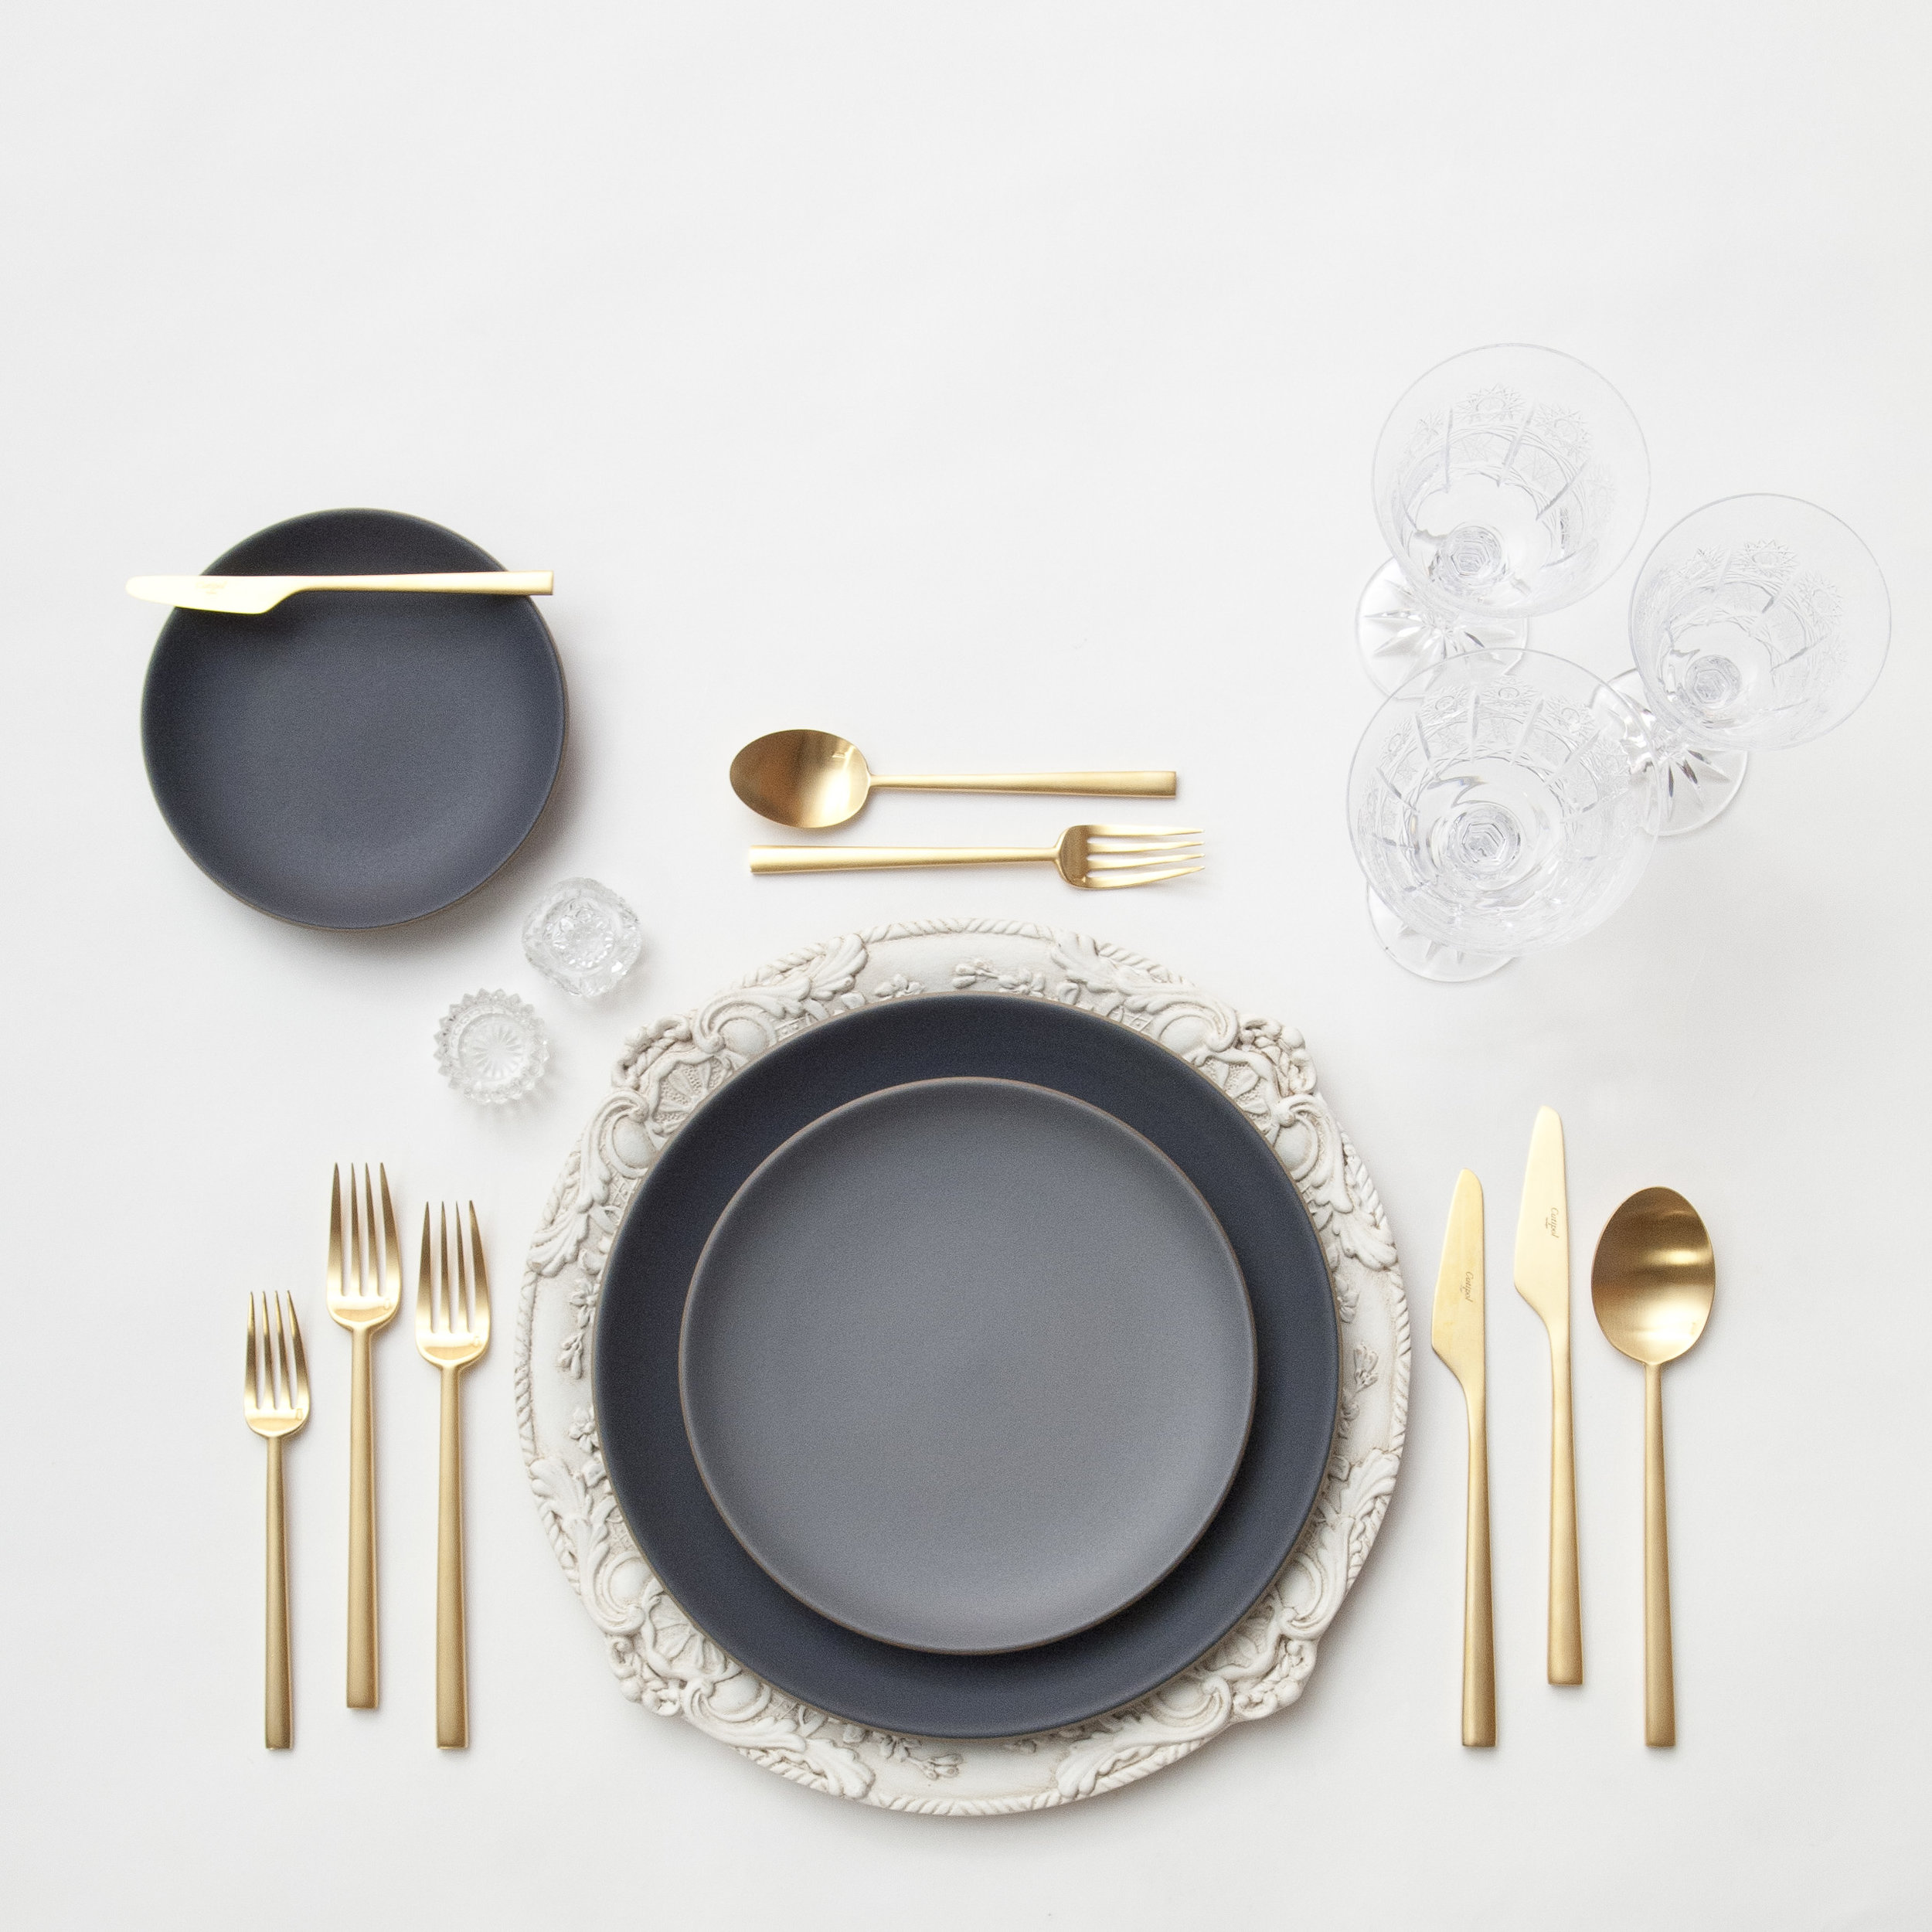 RENT: Verona Chargers in Antique White + Heath Ceramics in Indigo/Slate + Rondo Flatware in Brushed 24k Gold + Czech Crystal Stemware + Antique Crystal Salt Cellars   SHOP: Verona Chargers in Antique White + Rondo Flatware in Brushed 24k Gold